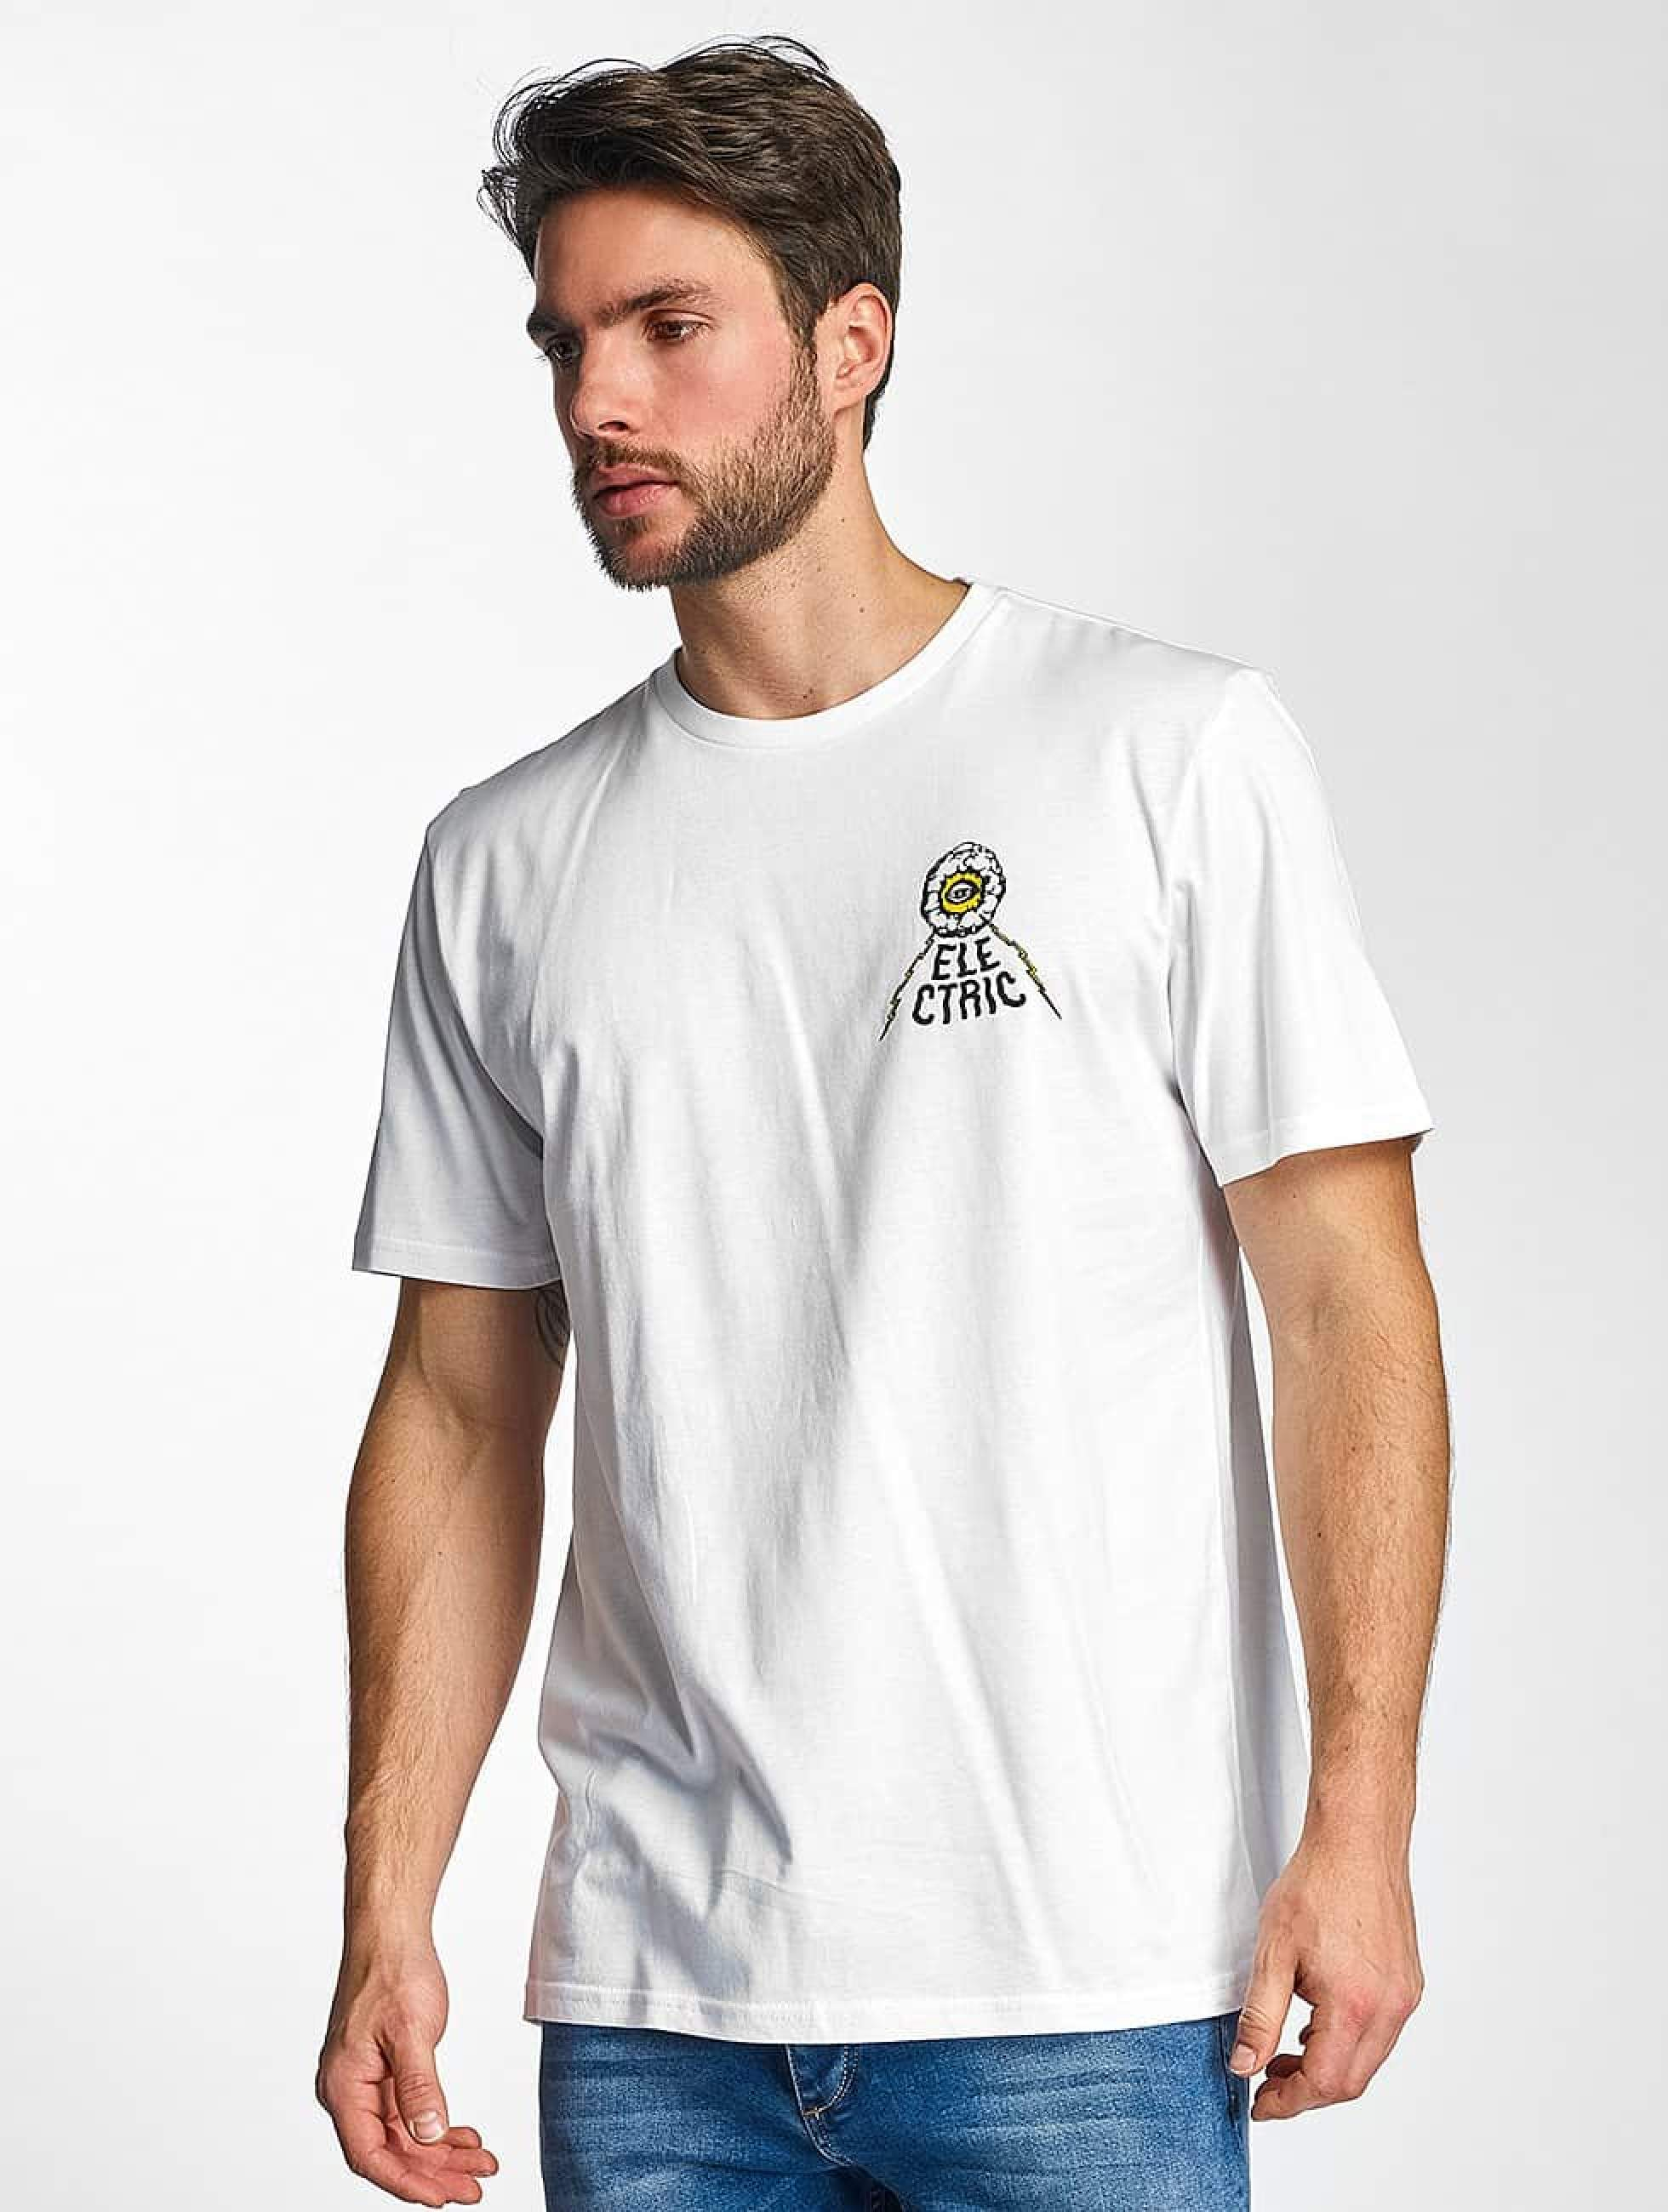 Electric | WILD SOULS blanc Homme T-Shirt